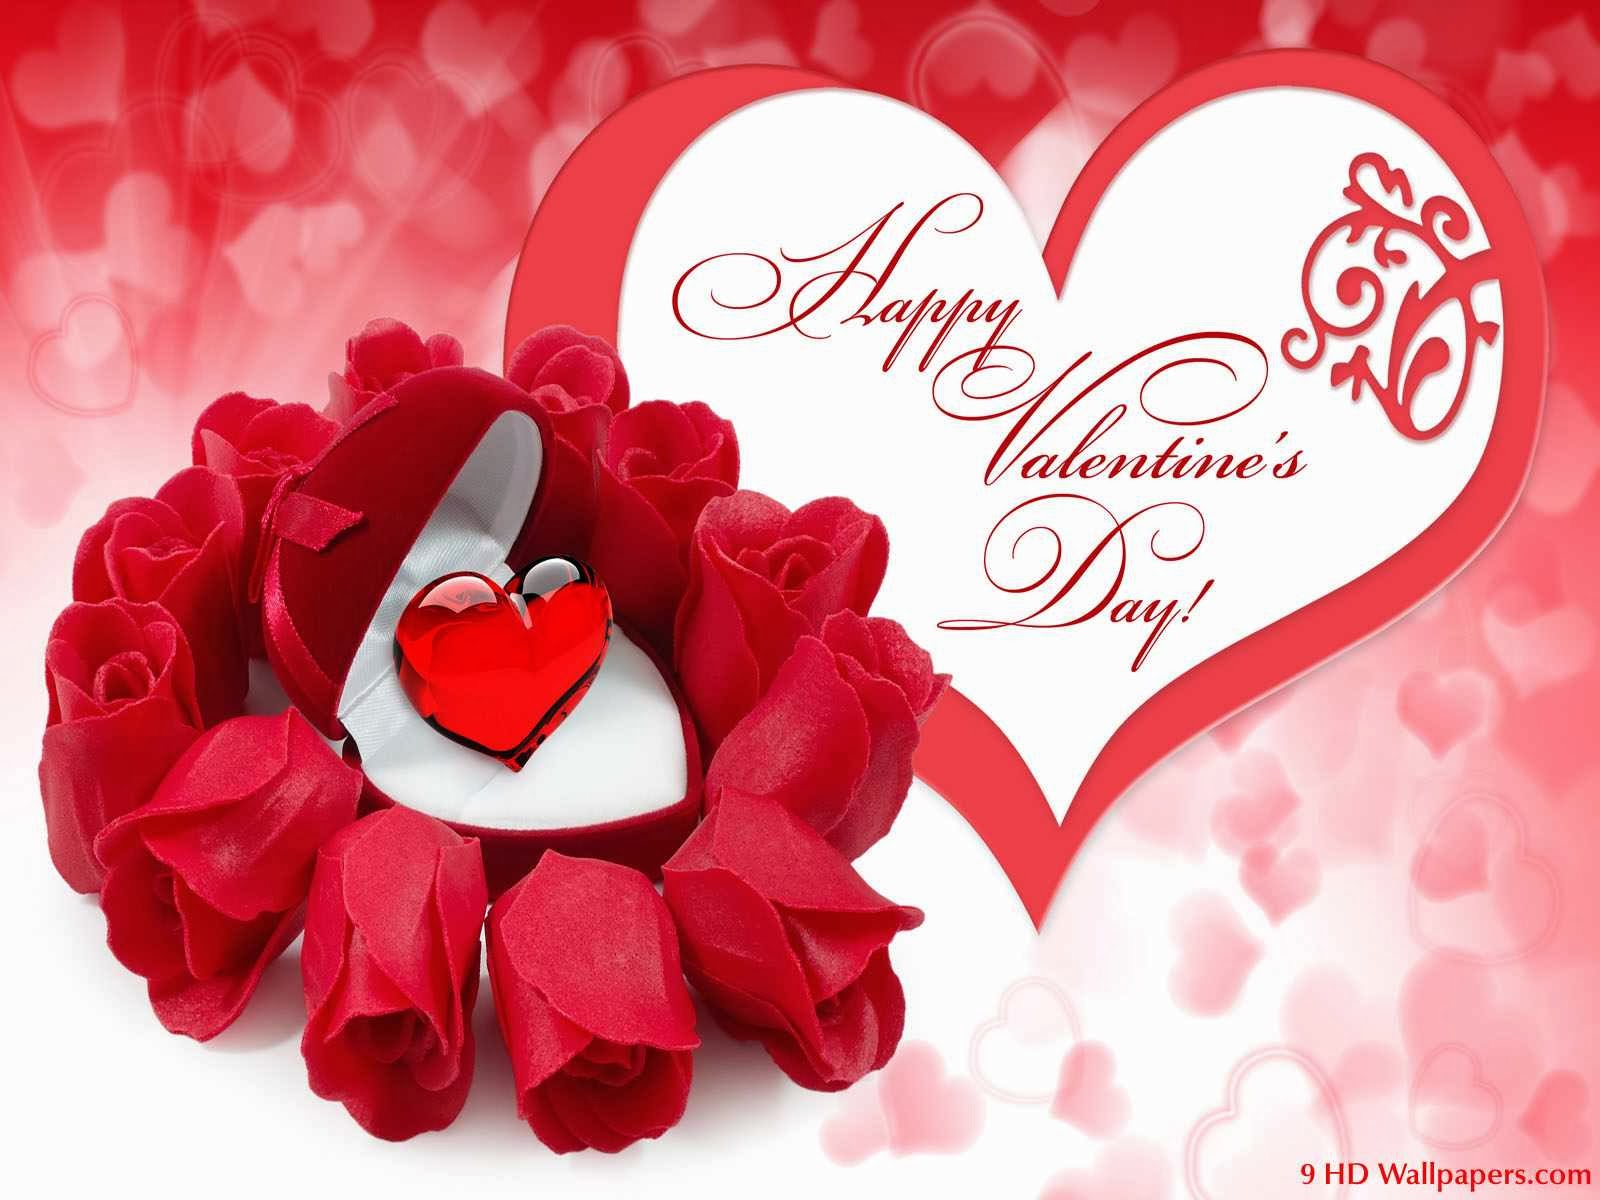 Happy Valentines Day 2015 HD Wallpapers mirashus – Happy Valentines Day 2015 Cards